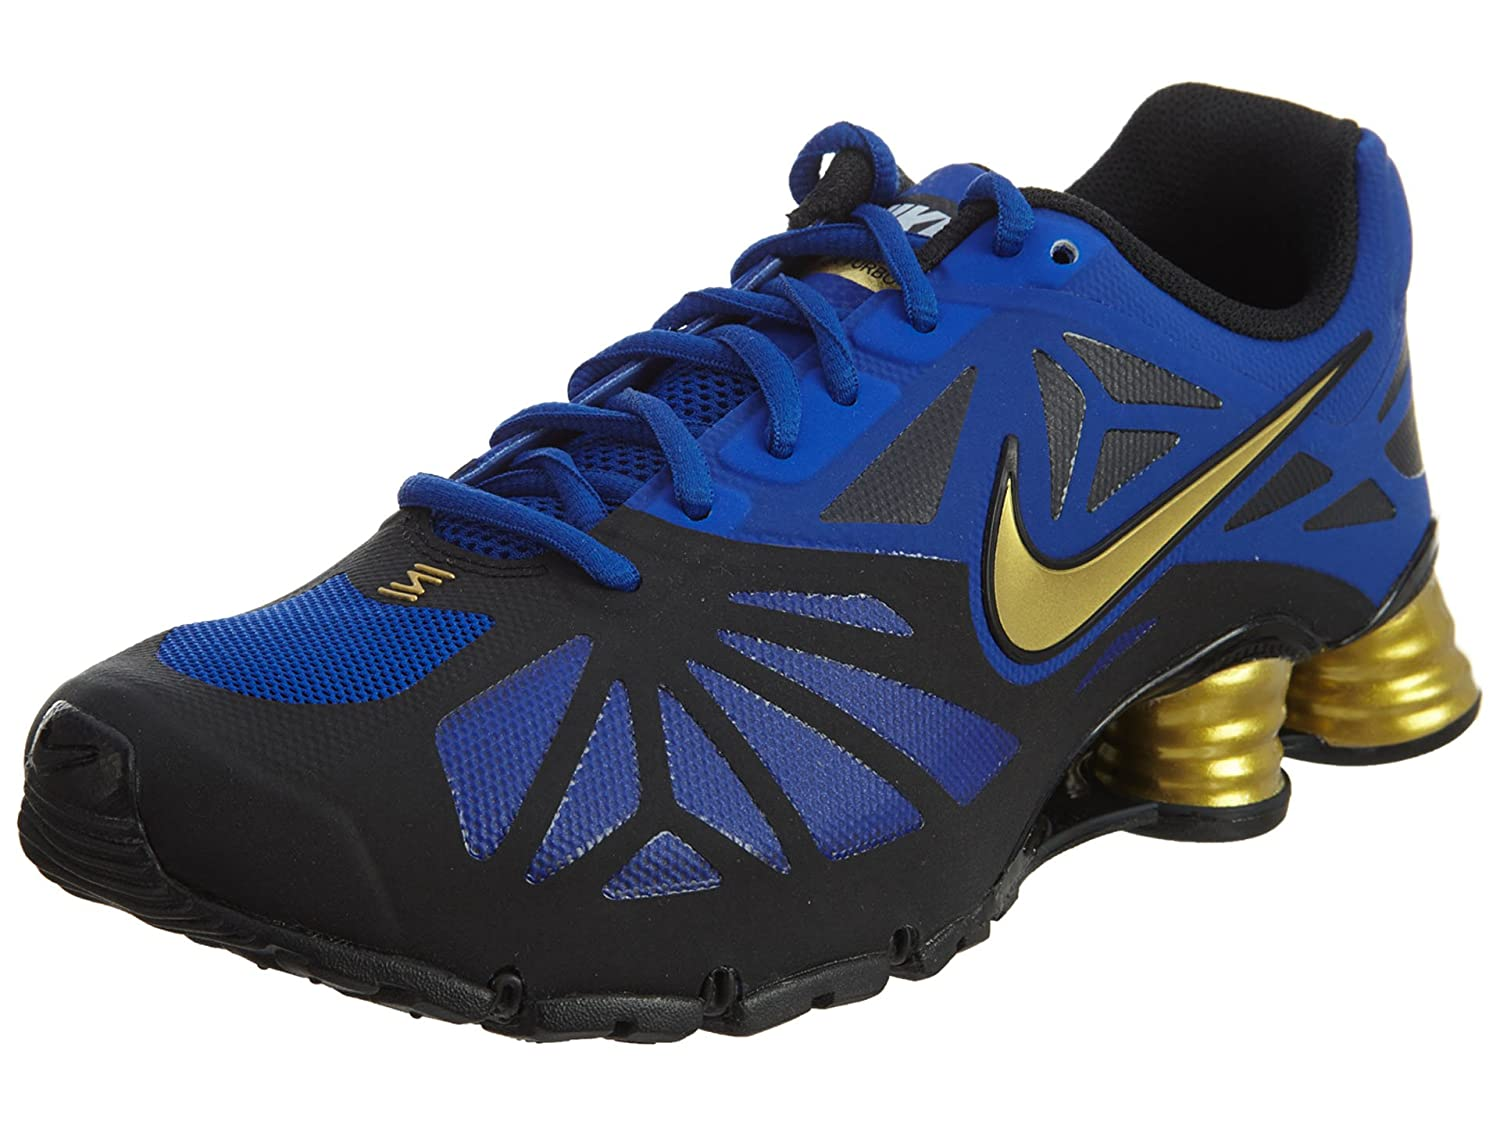 40006782860e86 Nike Shox Turbo 14 Sz 13 Mens Running Shoes Black New in Box  Amazon.ca   Sports   Outdoors